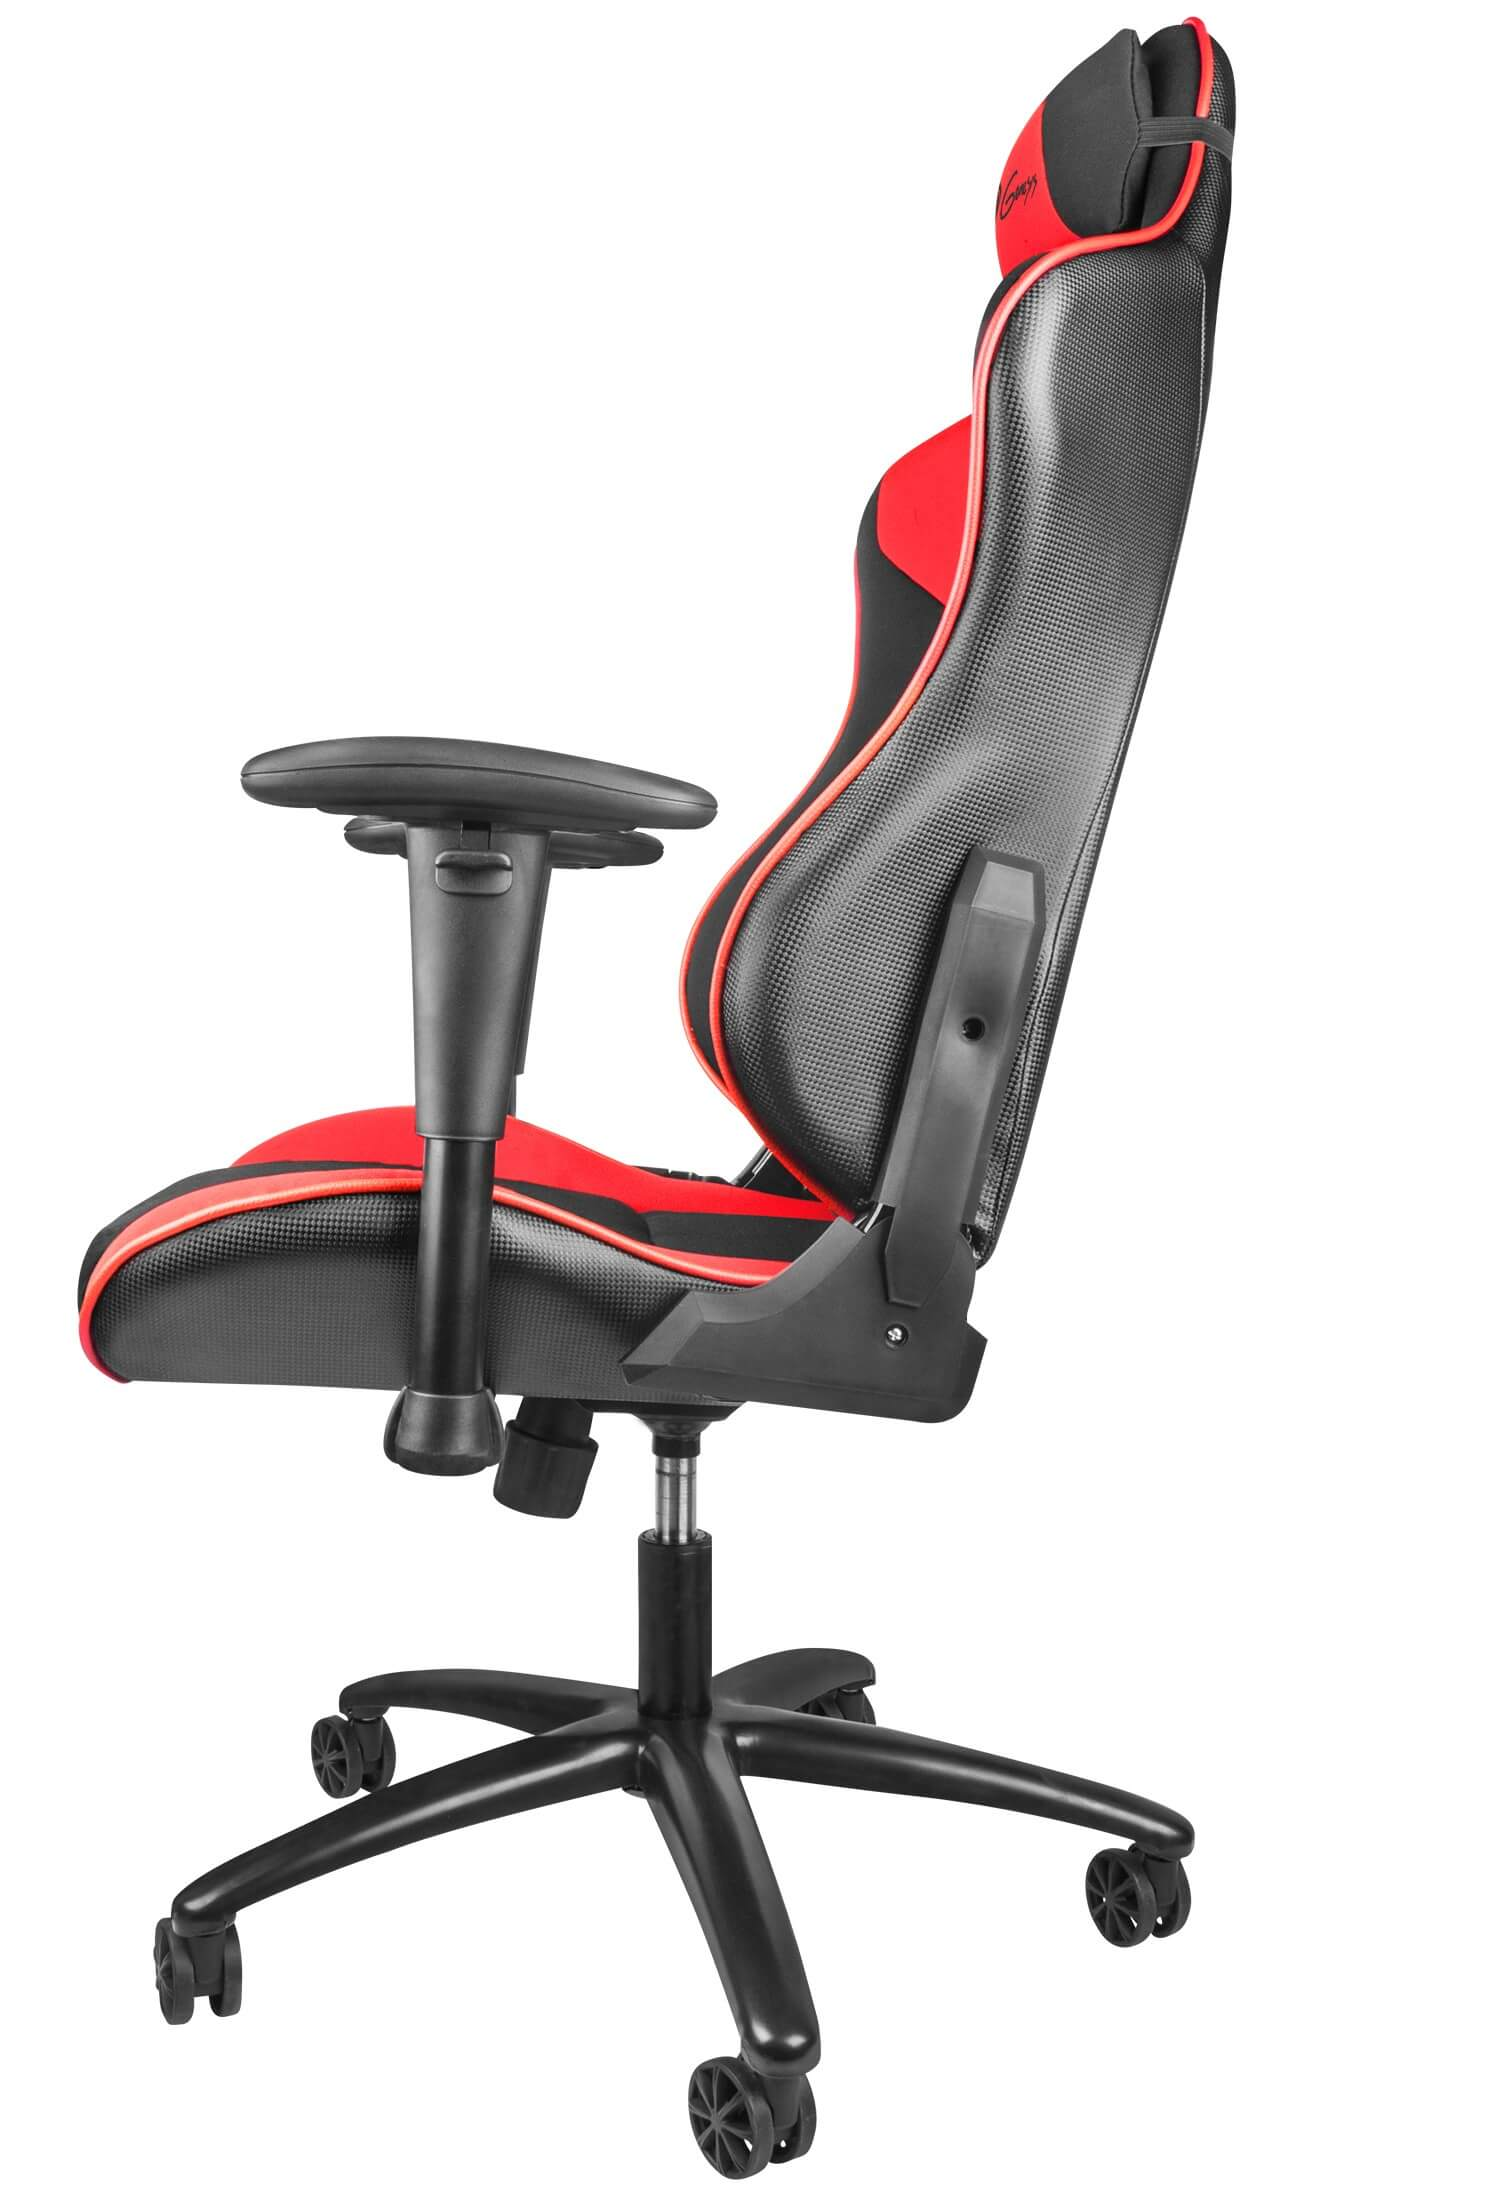 GAMING CHAIR GENESIS NITRO 770 BLACK RED